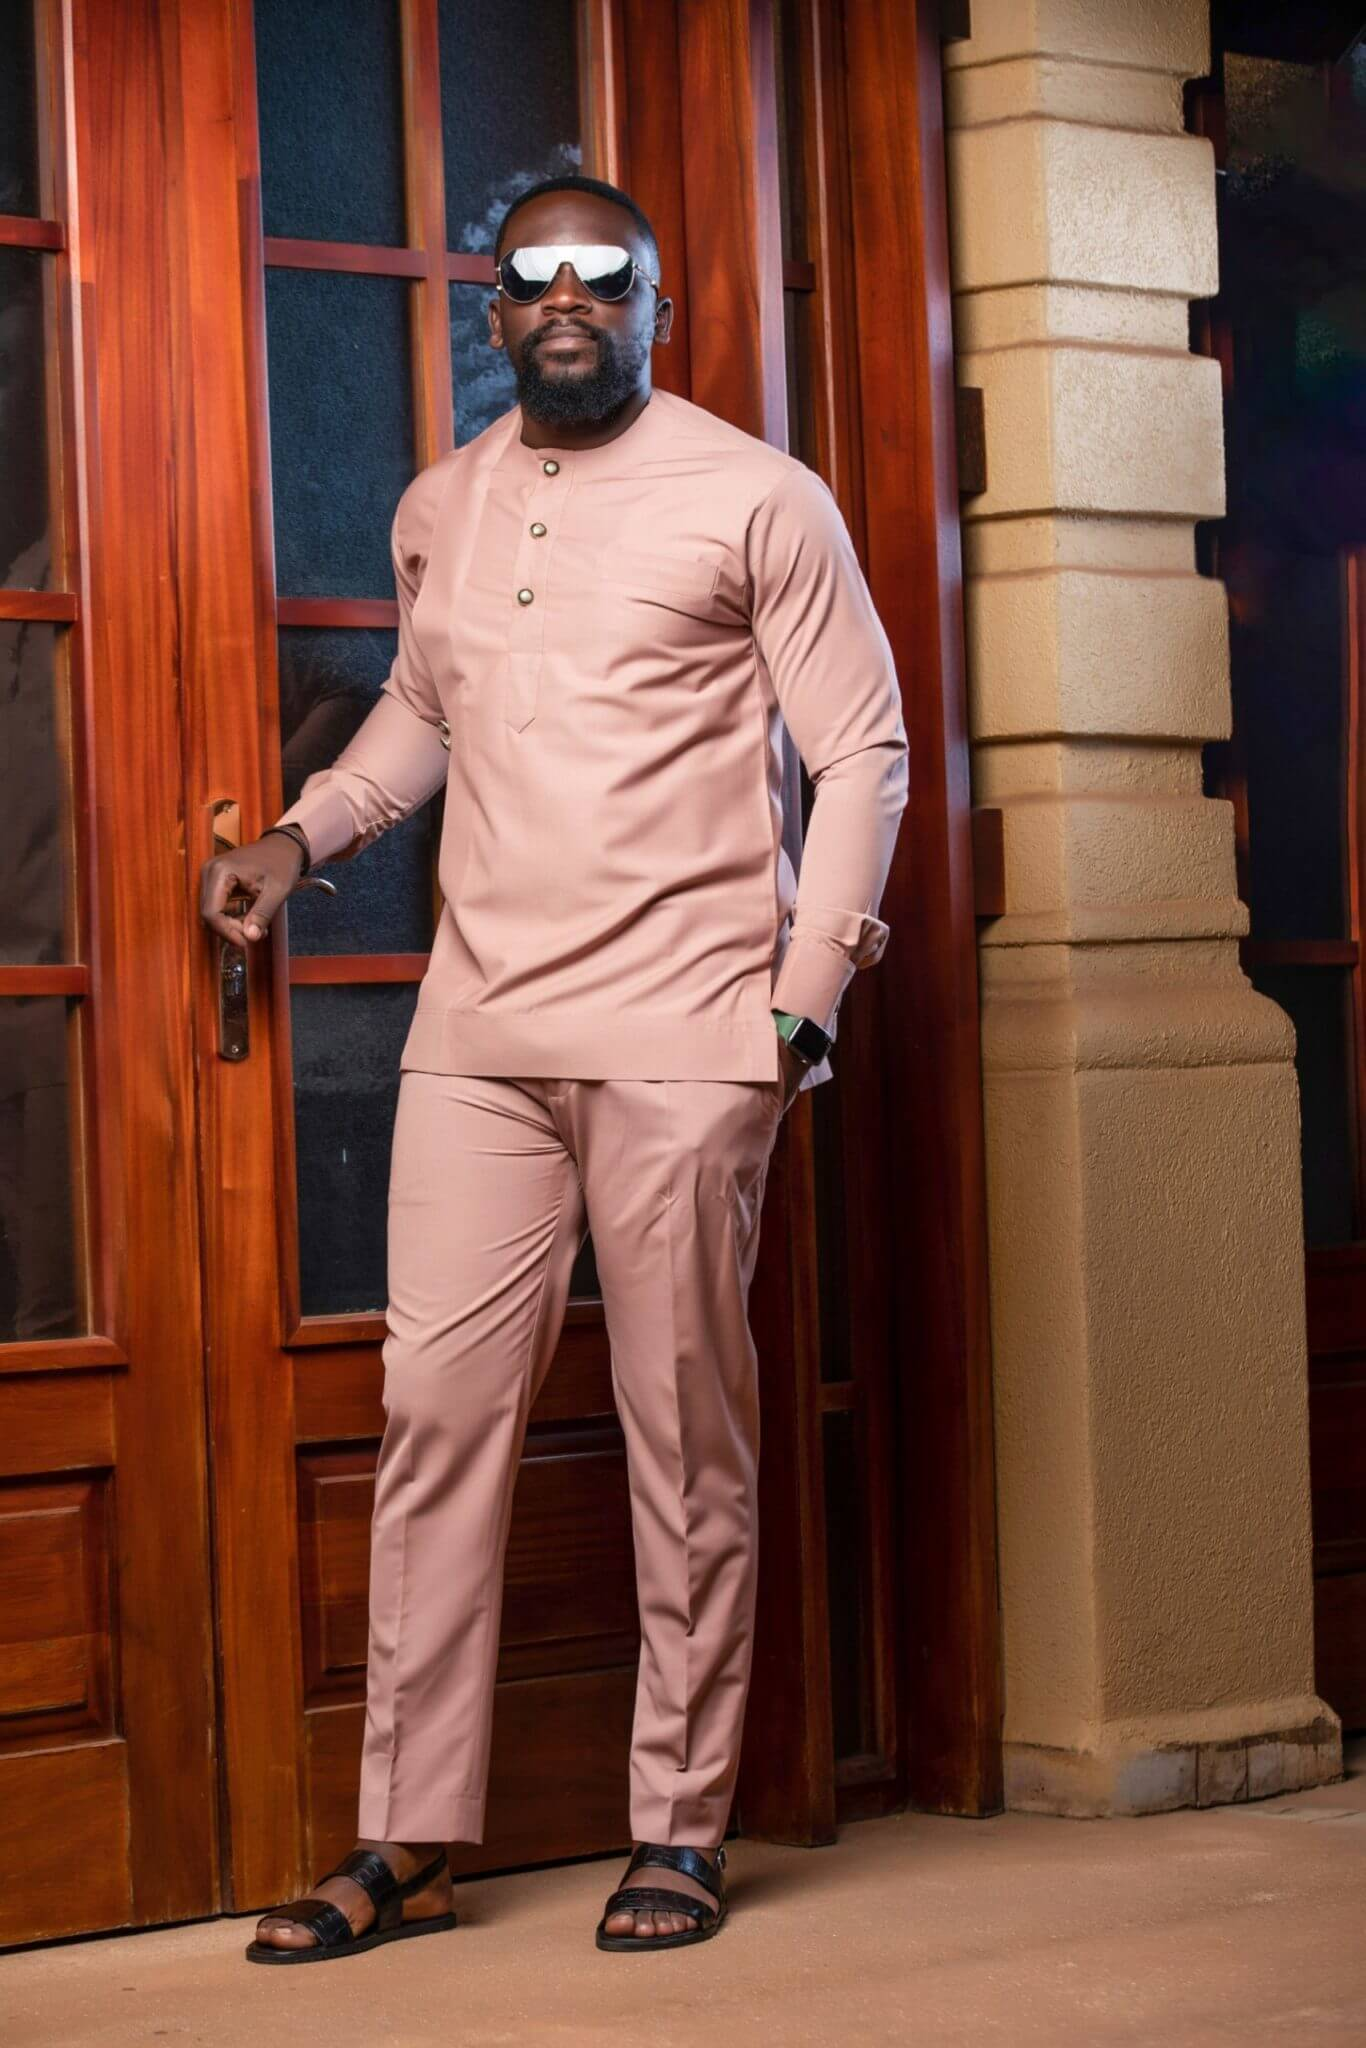 16Larry Casual Kampala Menswear scaled 1 scaled